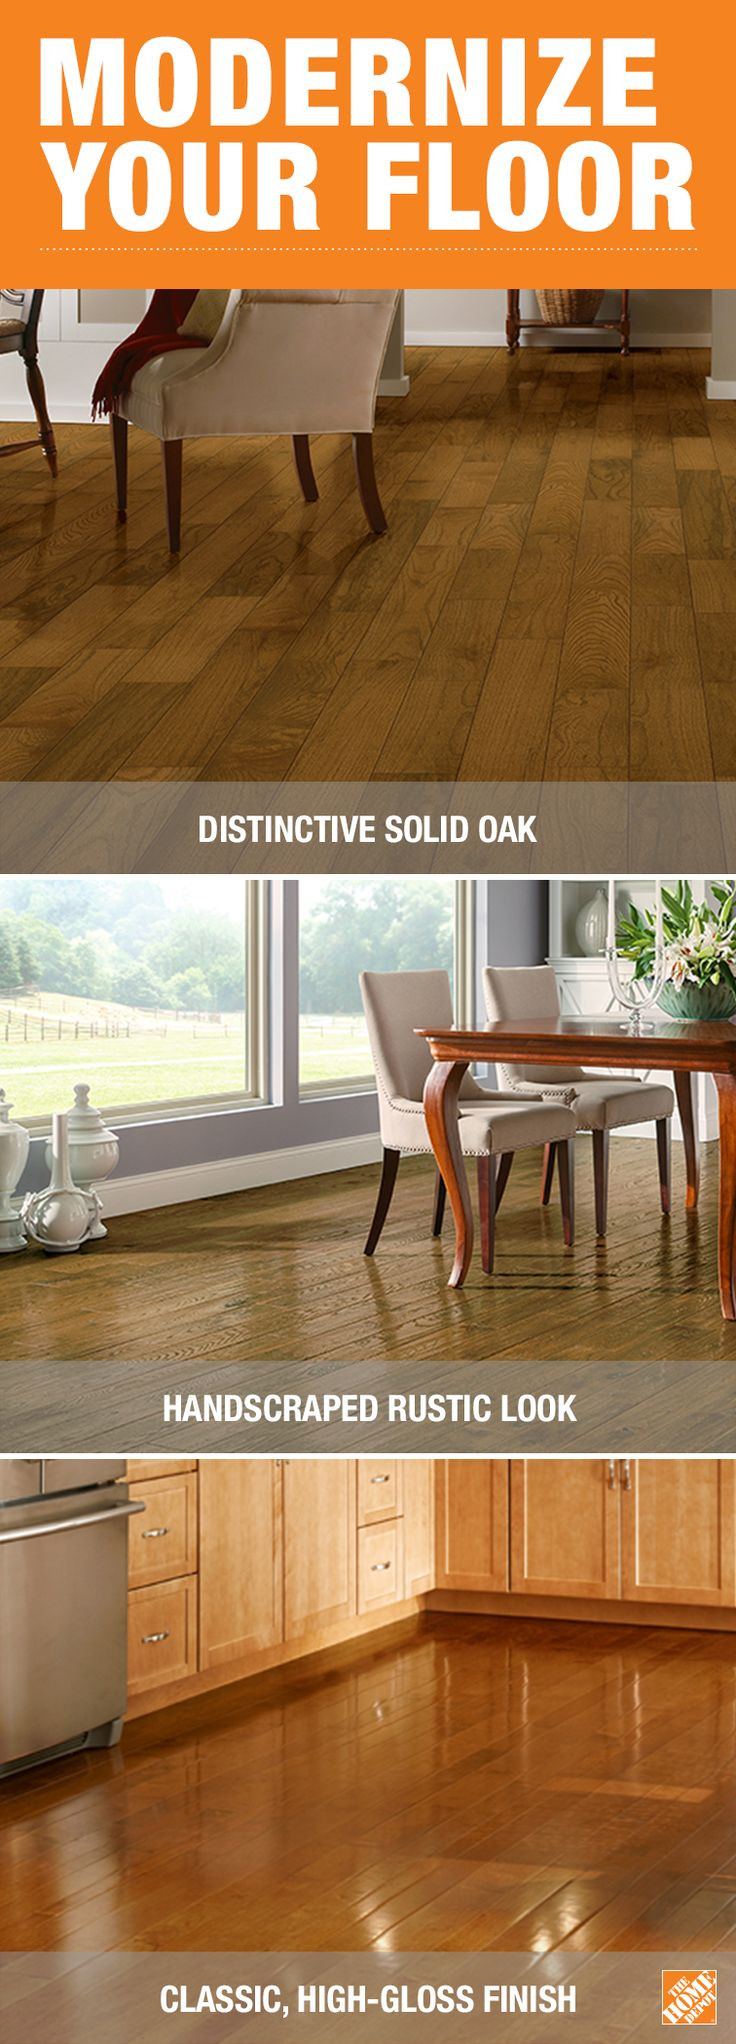 hardwood floor refinishing in delaware county pa of 91 best floor space indoors and outdoors images on pinterest inside shop our selection of solid hardwood in the flooring department at the home depot